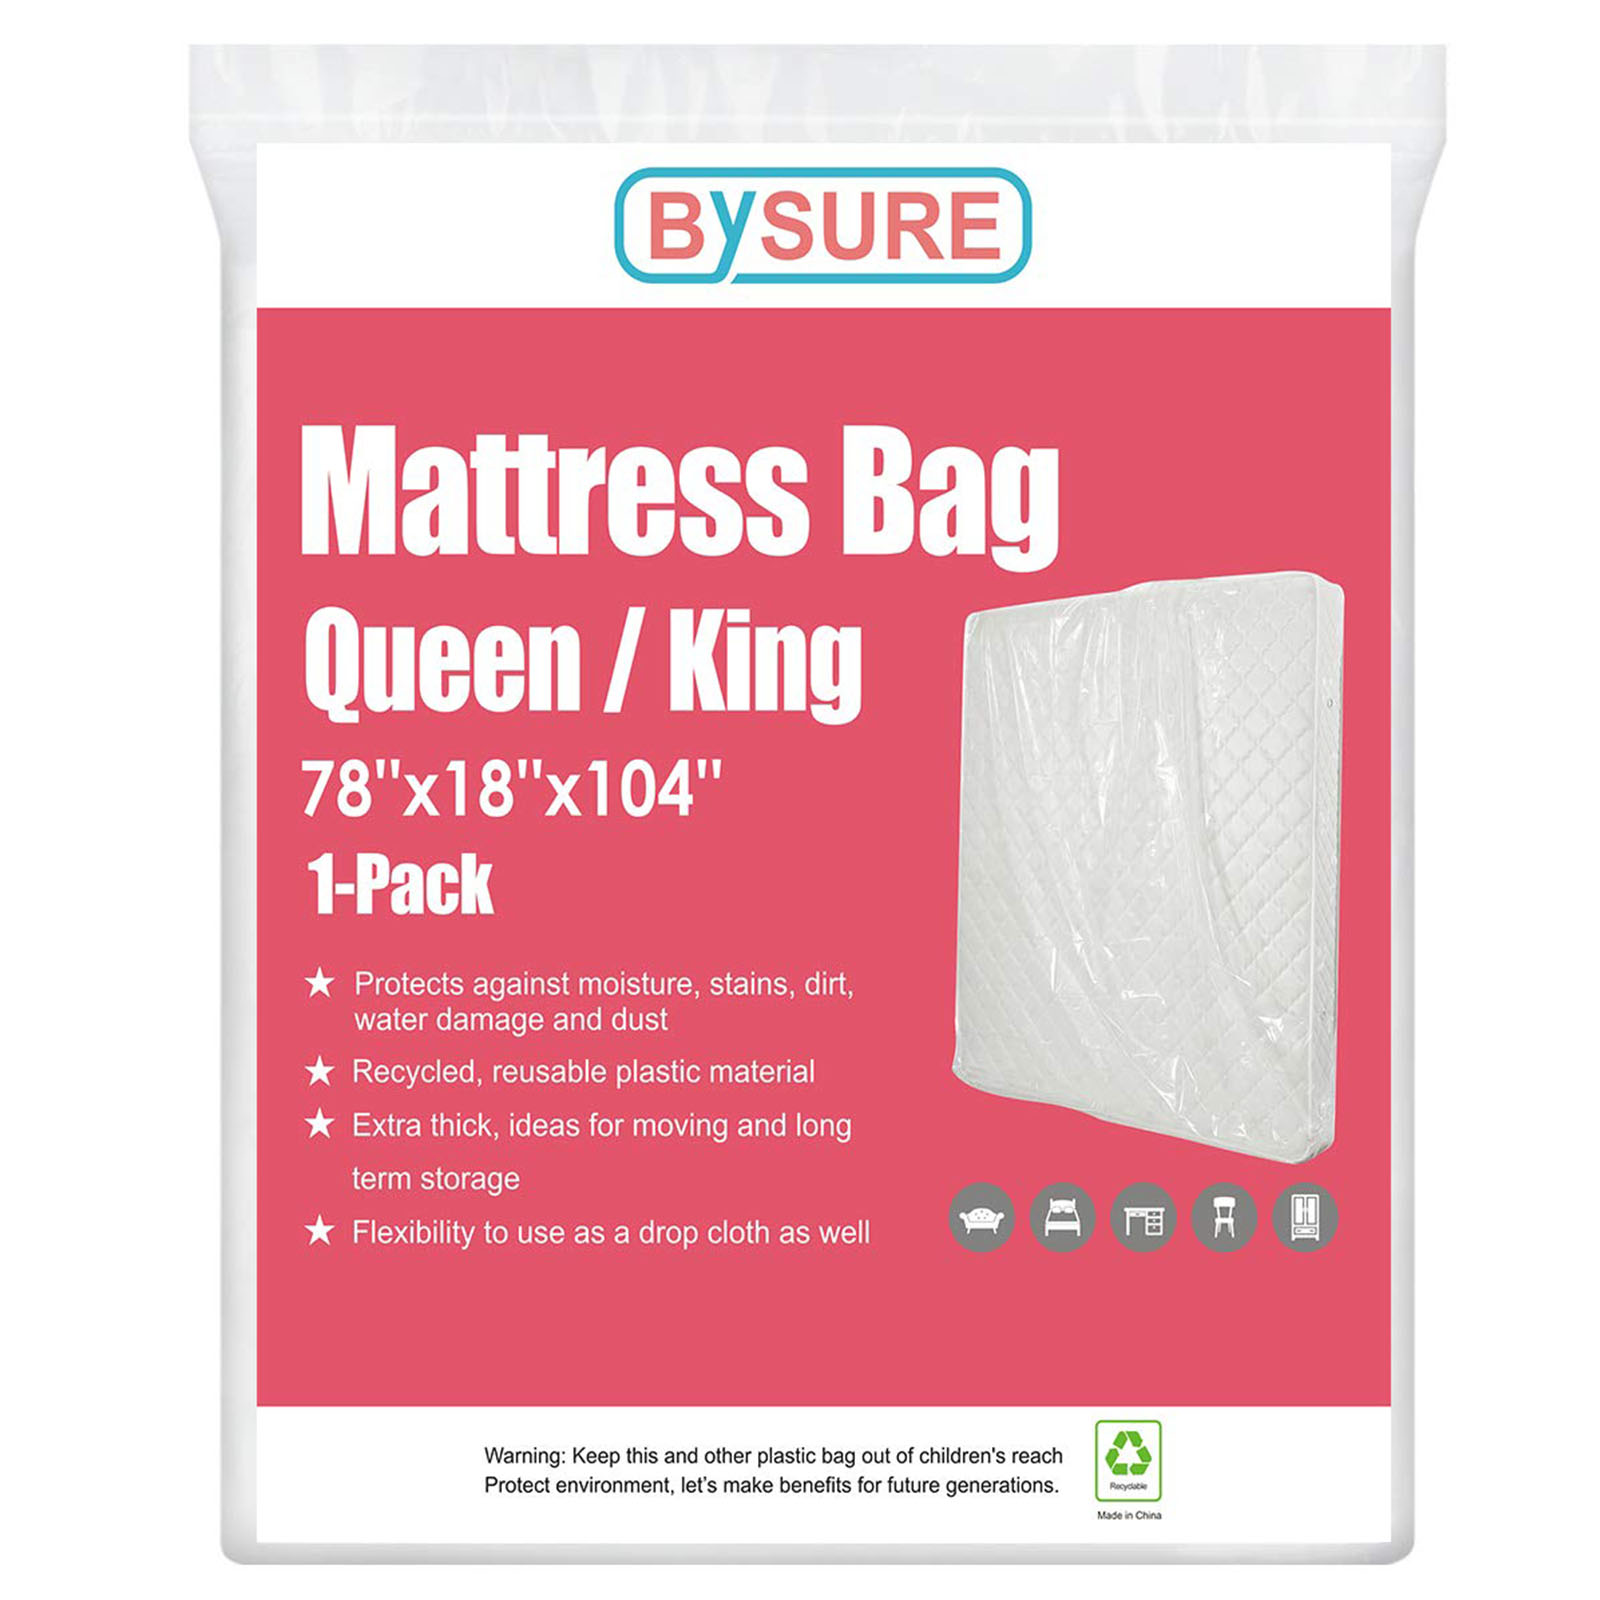 HOMEIDEAS 4 Mil 1-Pack Super Thick Mattress Bags for ...